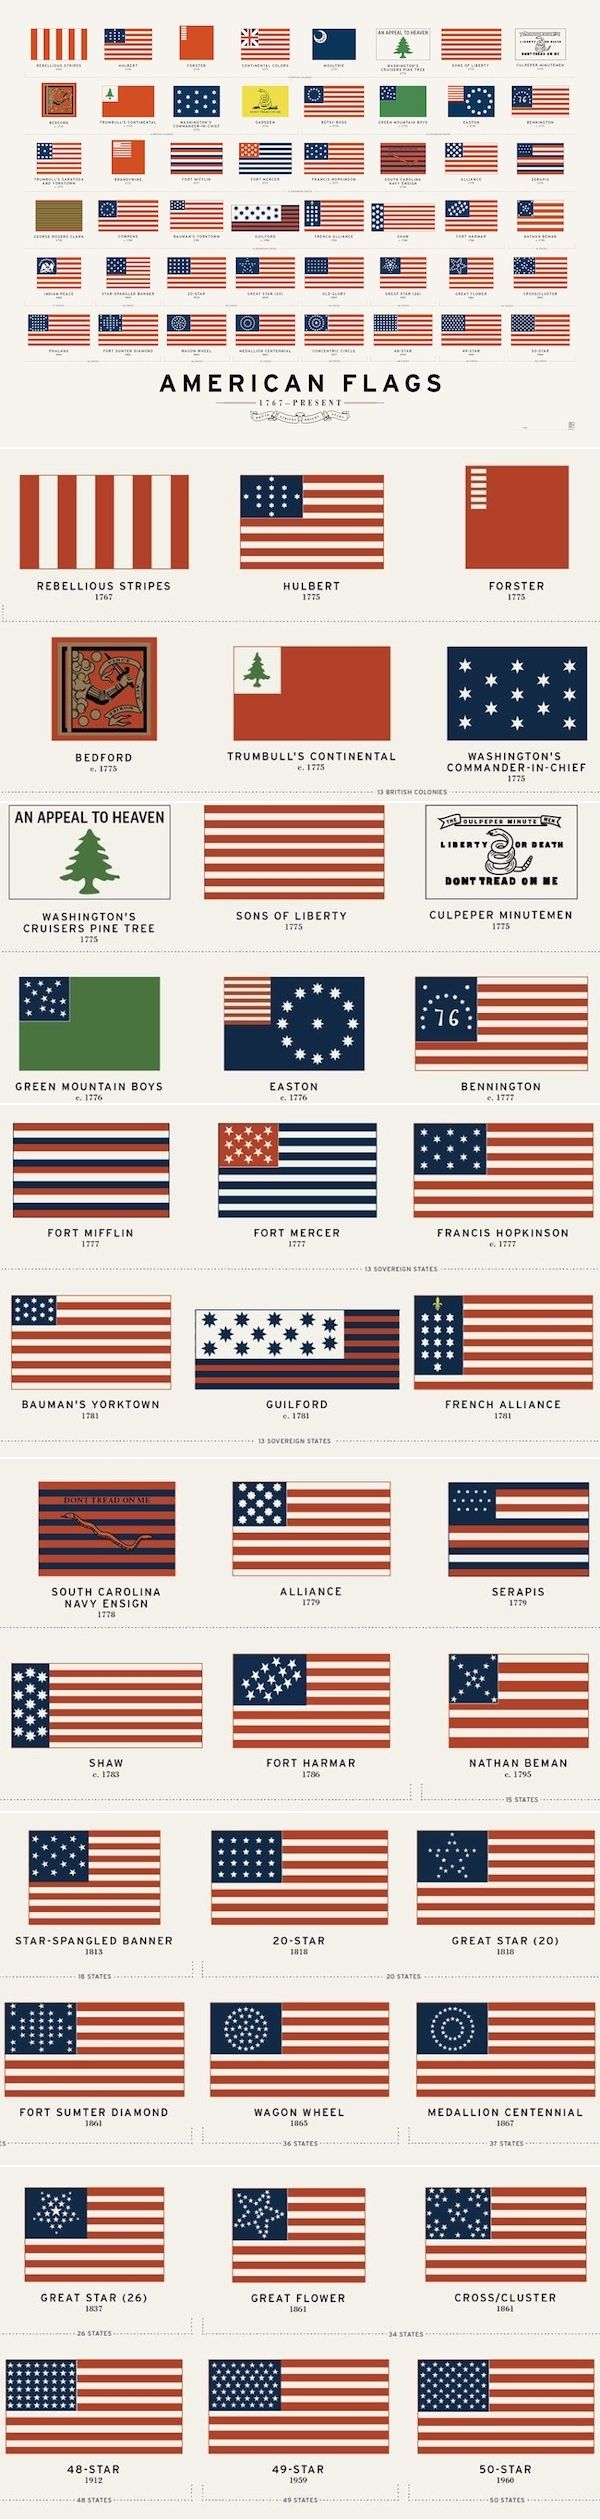 American Flags Flag History History Facts